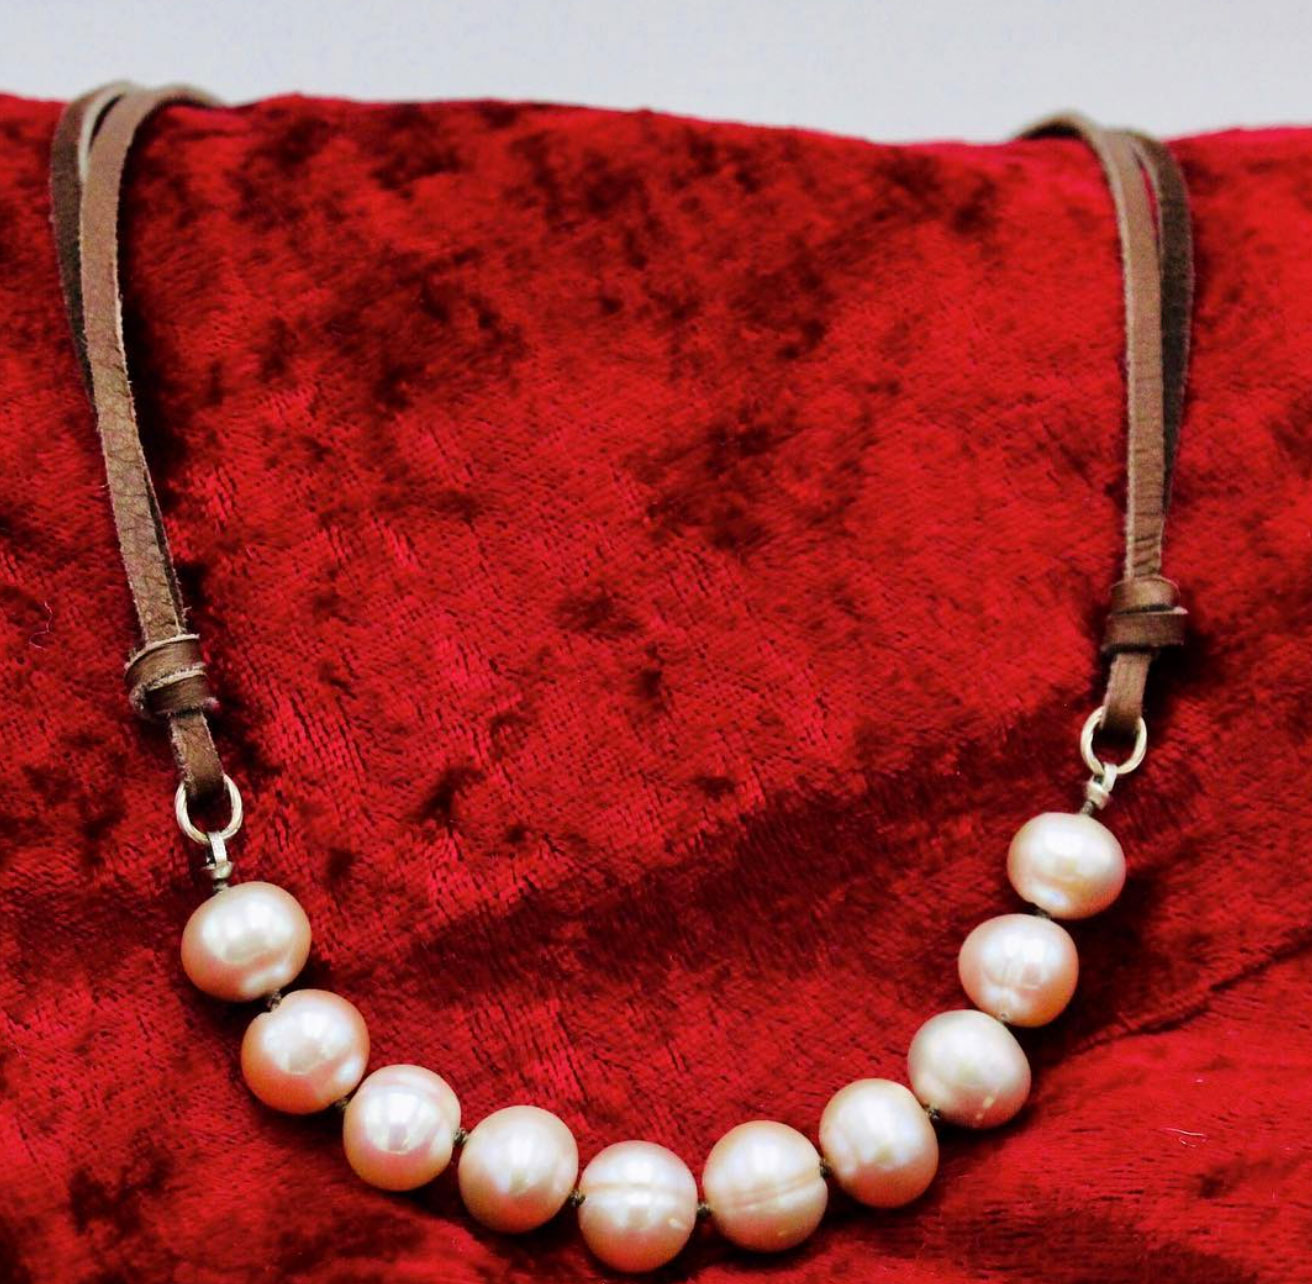 Beads and Beyond Durango. gifts, jewelry, and accessories for weddings